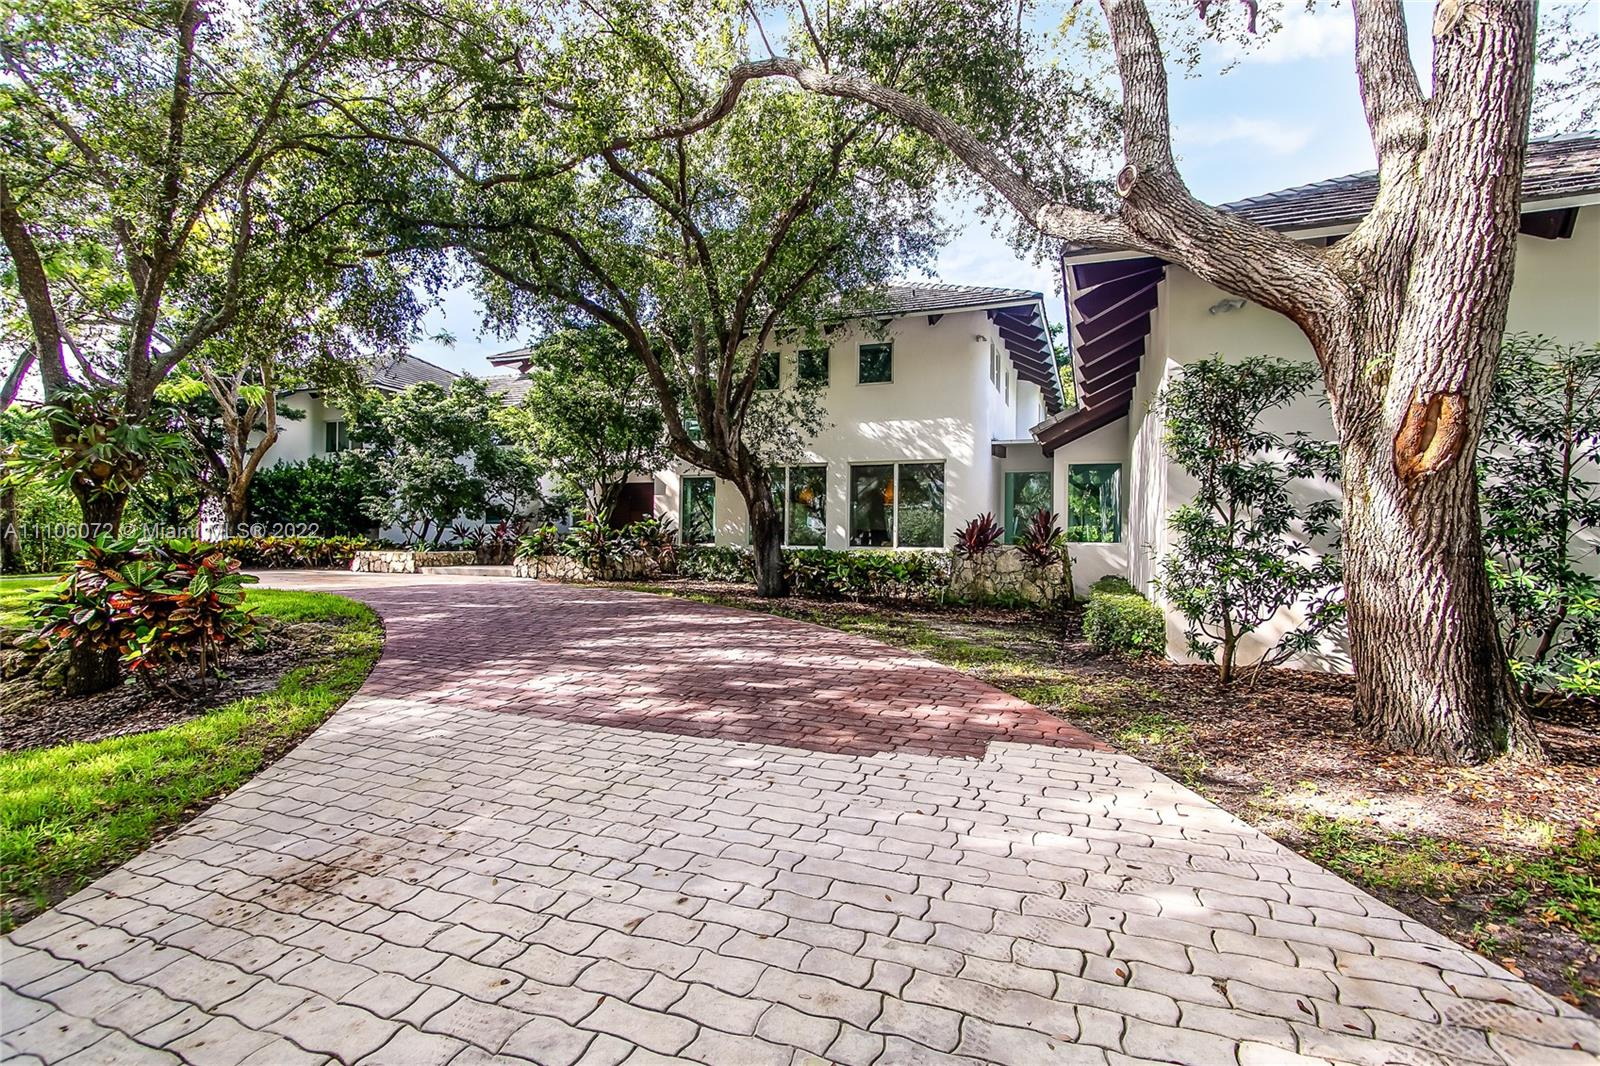 Open Wed 2 to 4 .This stunning estate is located in the coveted Pinecrest neighborhood. The home sits on aprox 39000sq ft  lot, on a quiet street, ideal for the privacy seeking homeowner. Featuring 6 beds + office/den and 7.5 baths, distributed through aprox 7200+ sq. ft., with natural light and soaring beamed ceilings throughout. Spacious living areas, gourmet kitchen with top appliances, 2 fireplaces, 3 car garage add to the understated elegance of the property. Amenities include, large heated pool, large backyard with lush landscaping and majestic trees, veranda with a summer kitchen, full-house generator, outdoor shower/pet-grooming area, basketball court and more. 3+ areas ideal for work-from-home. Top-rated schools nearby. Walk to Gulliver.  Quintessential South Florida luxury iving